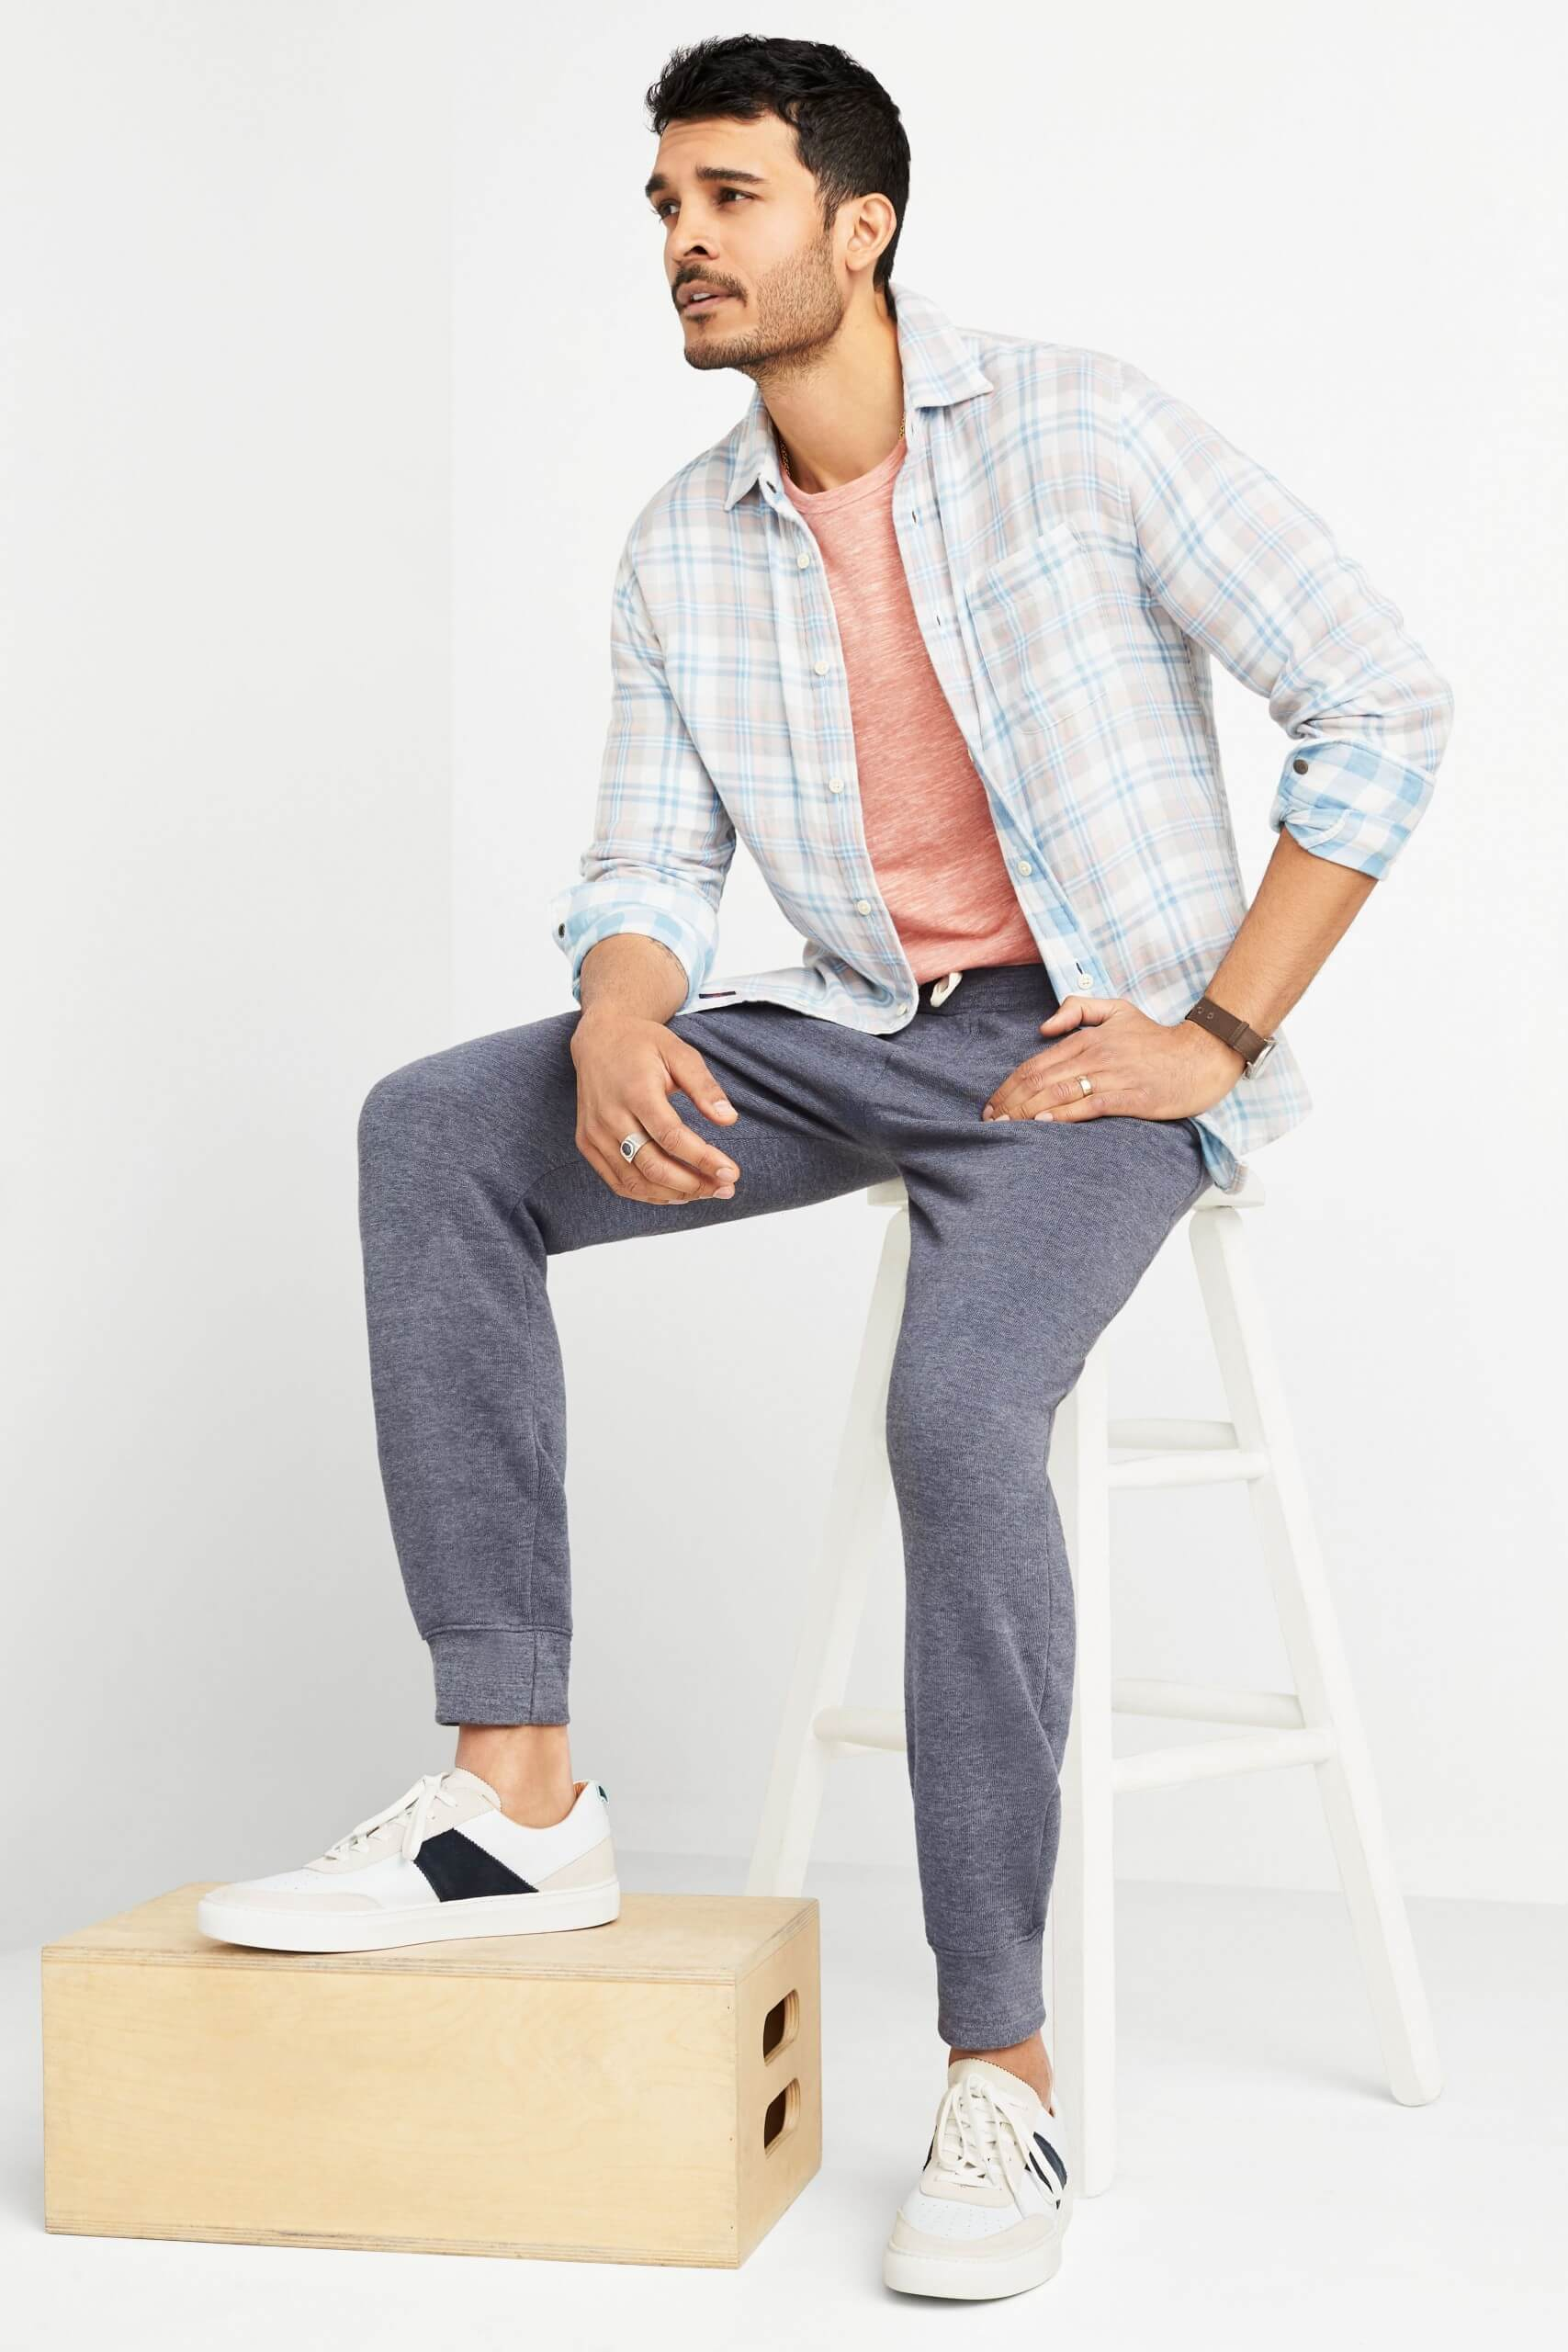 Stitch Fix Men's model sitting on a white stool wearing pink terry crew sweatshirt under a plaid button-down shirt with fleece pants and white sneakers.